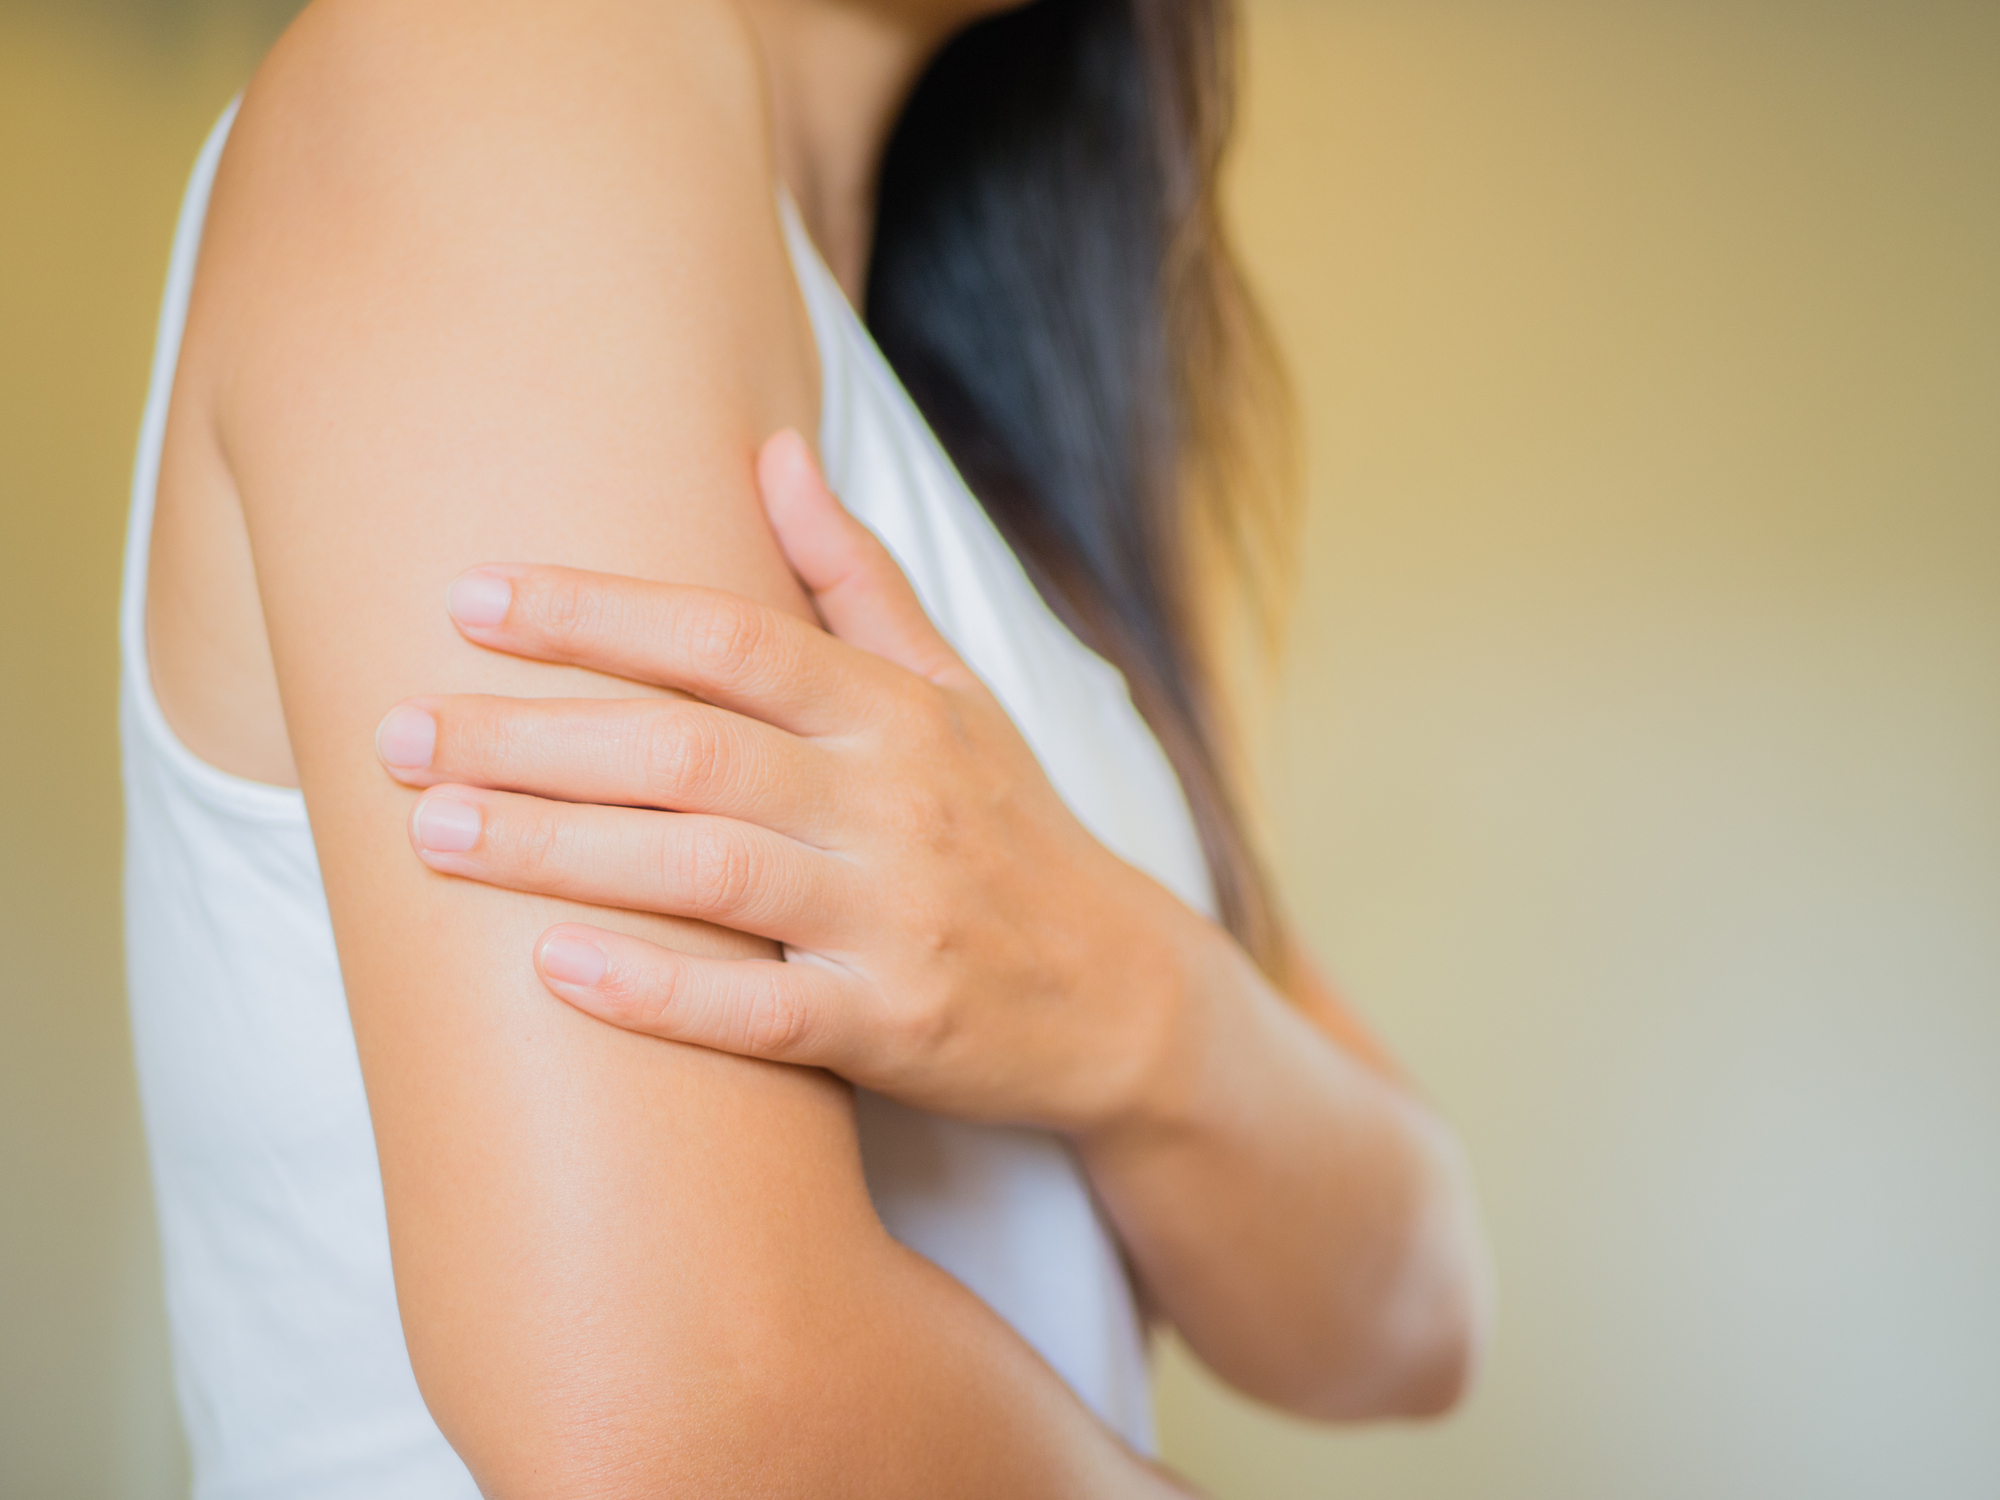 7 Reasons You Have Itchy Skin With No Rash in Sight, According to Doctors